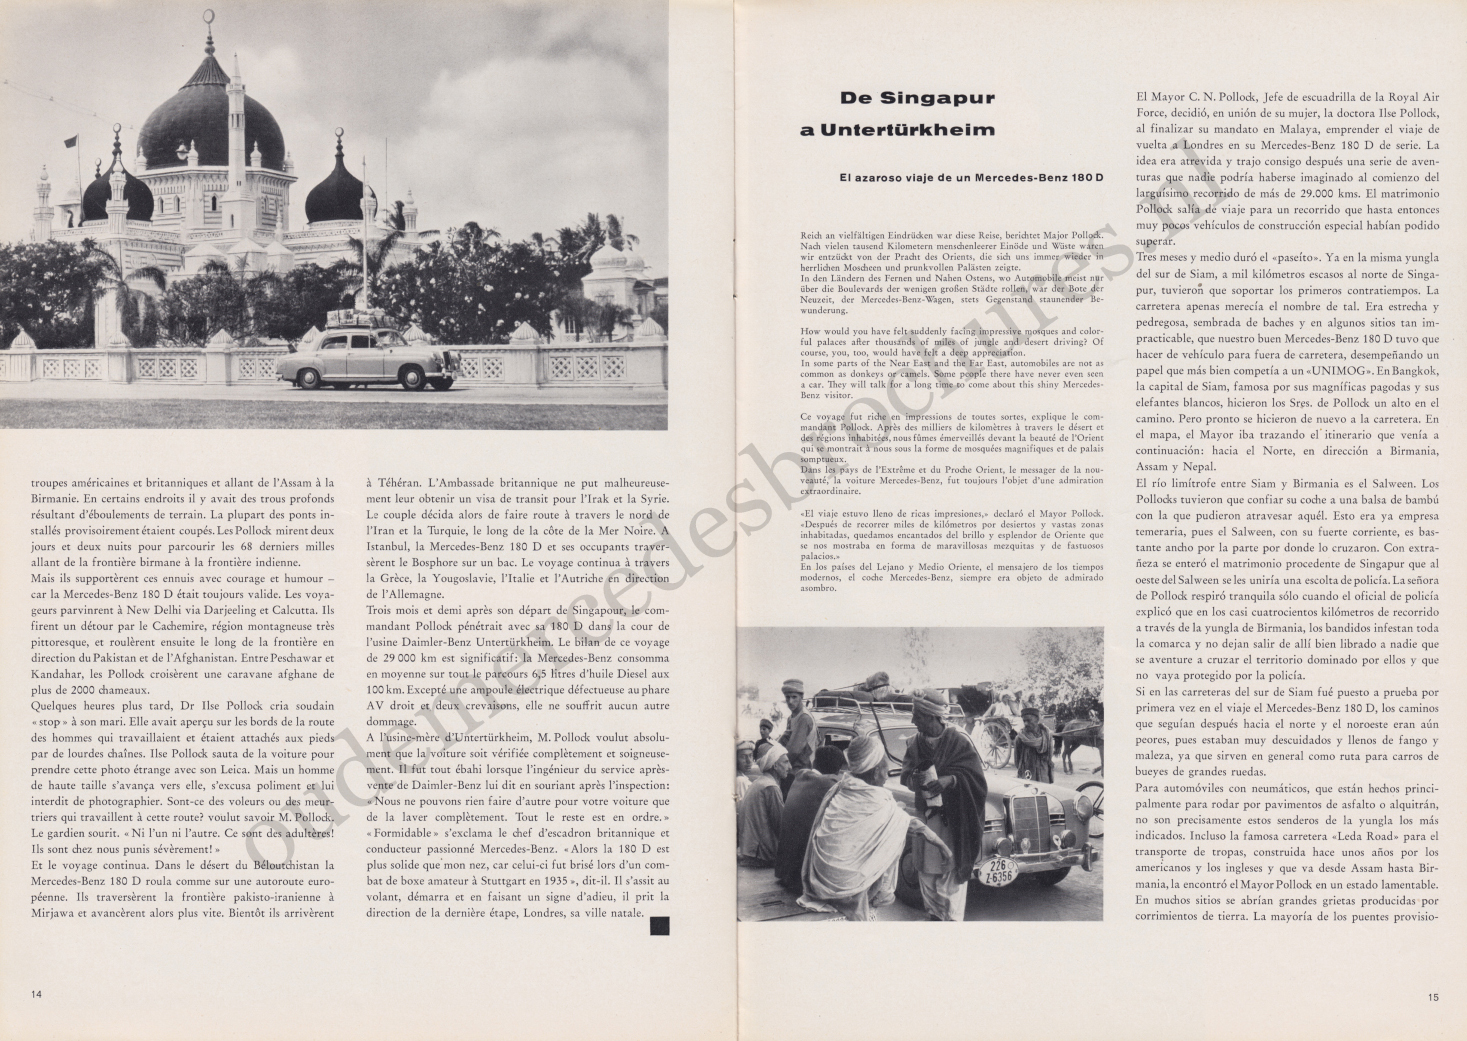 (REVISTA): Periódico In aller welt n.º 32 - Mercedes-Benz no mundo - 1959 - multilingue 008